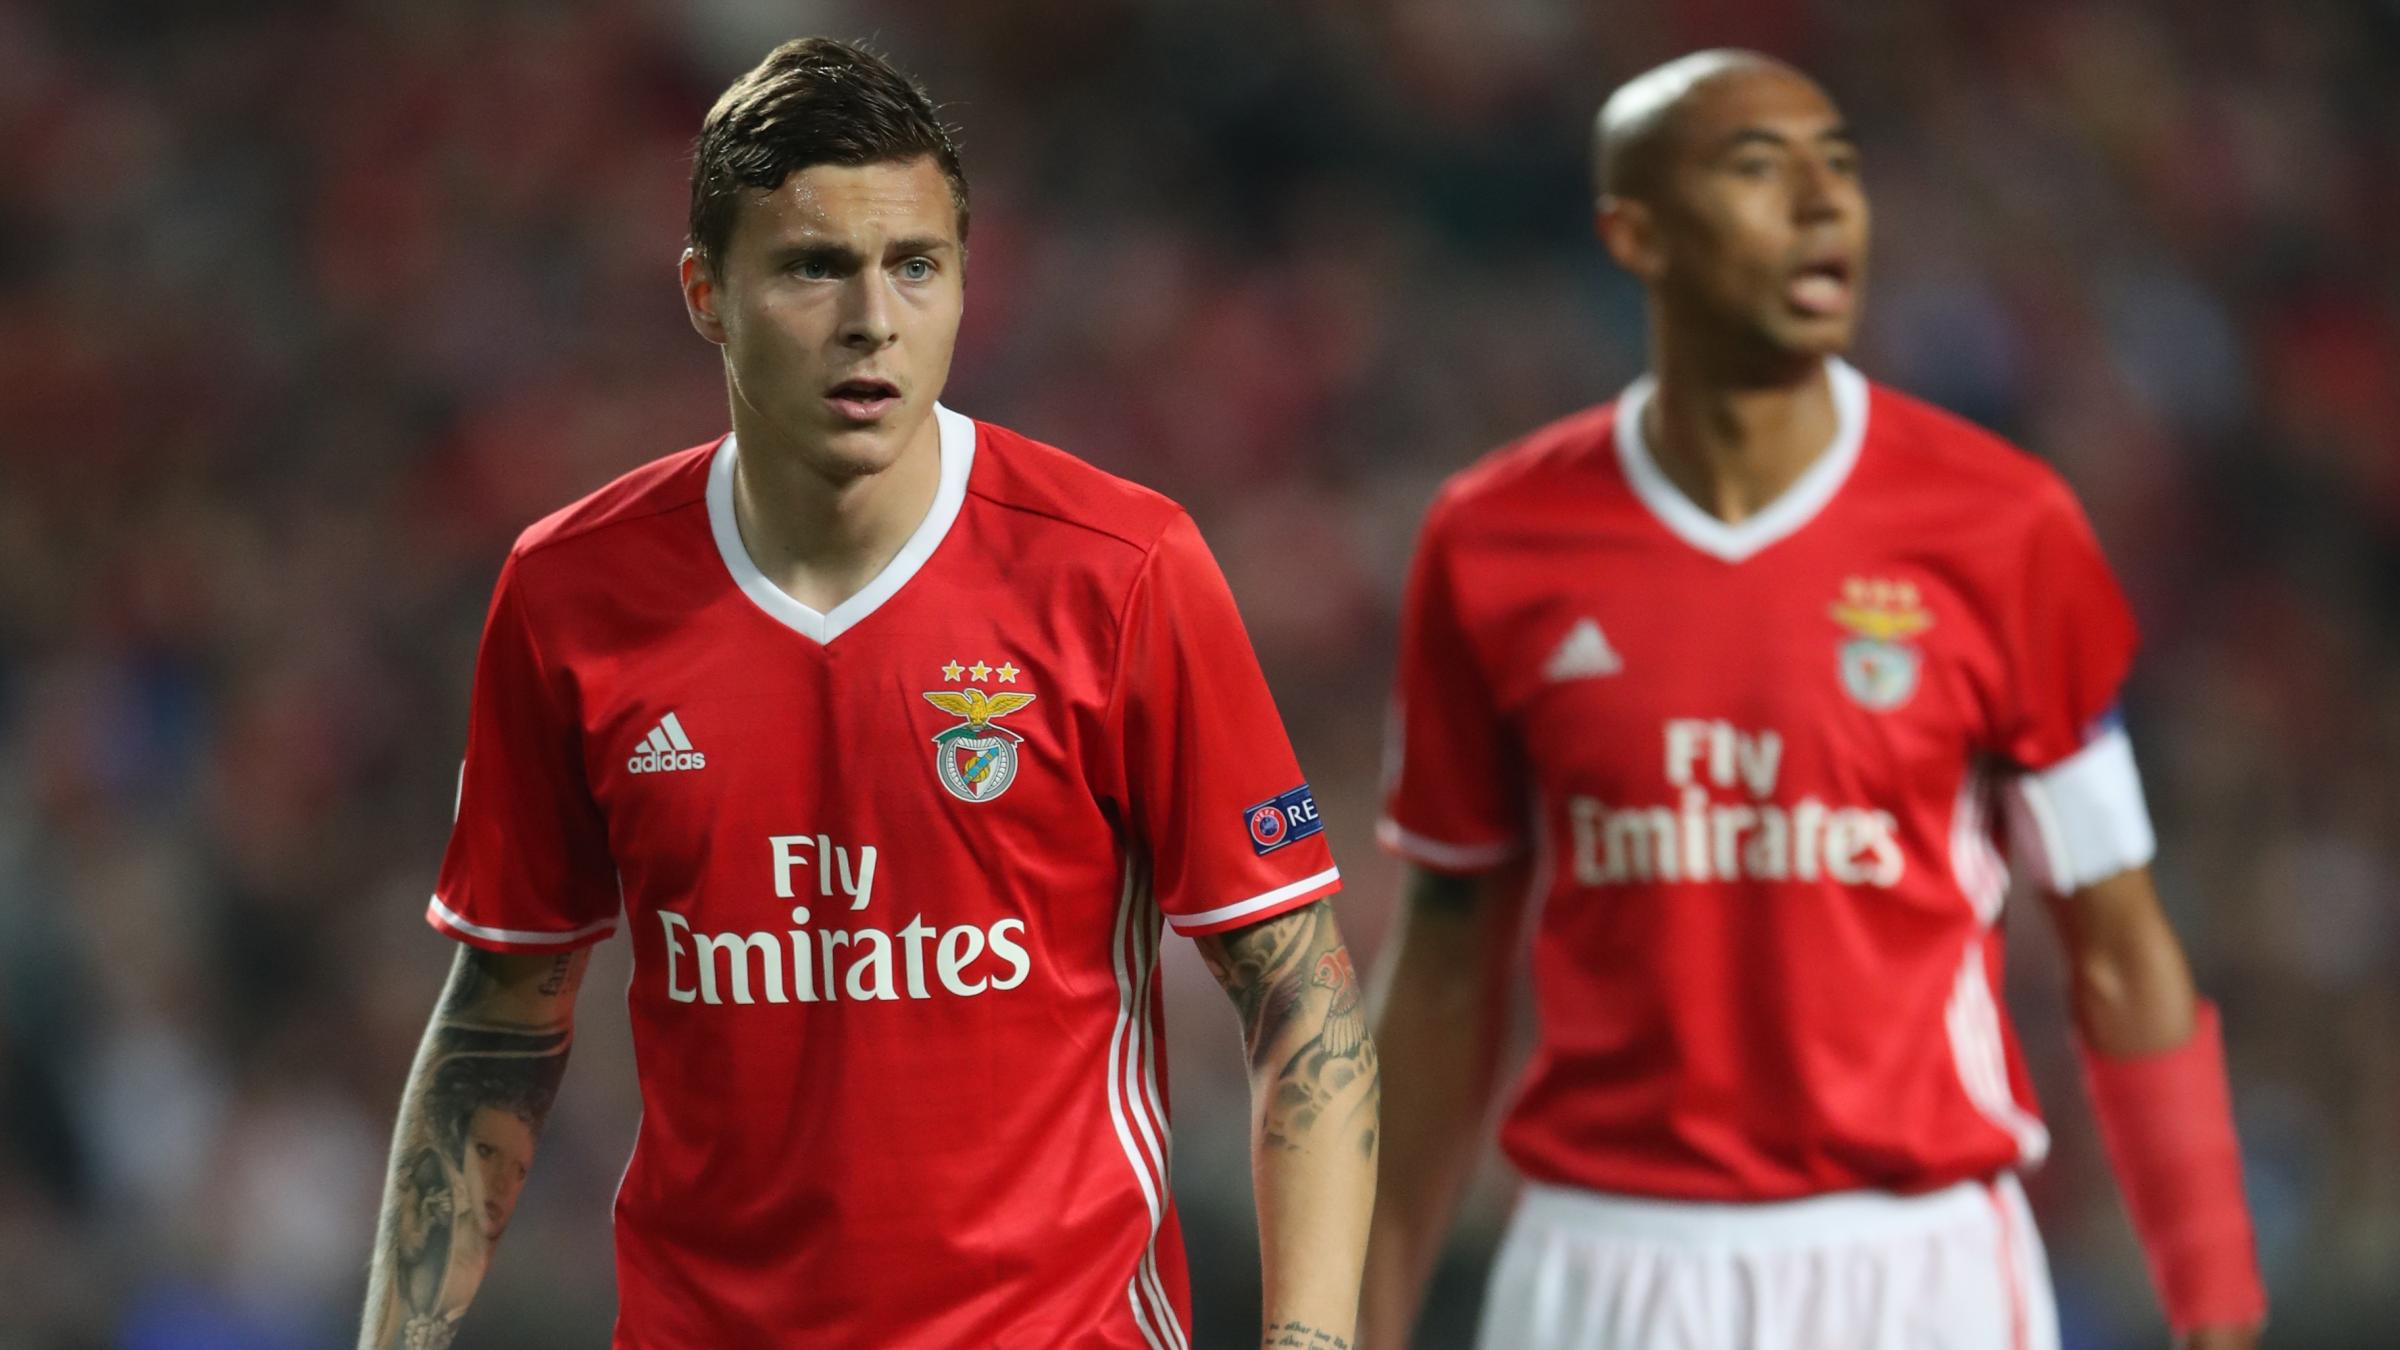 Manchester United sign Lindelof for £40 million from Benfica